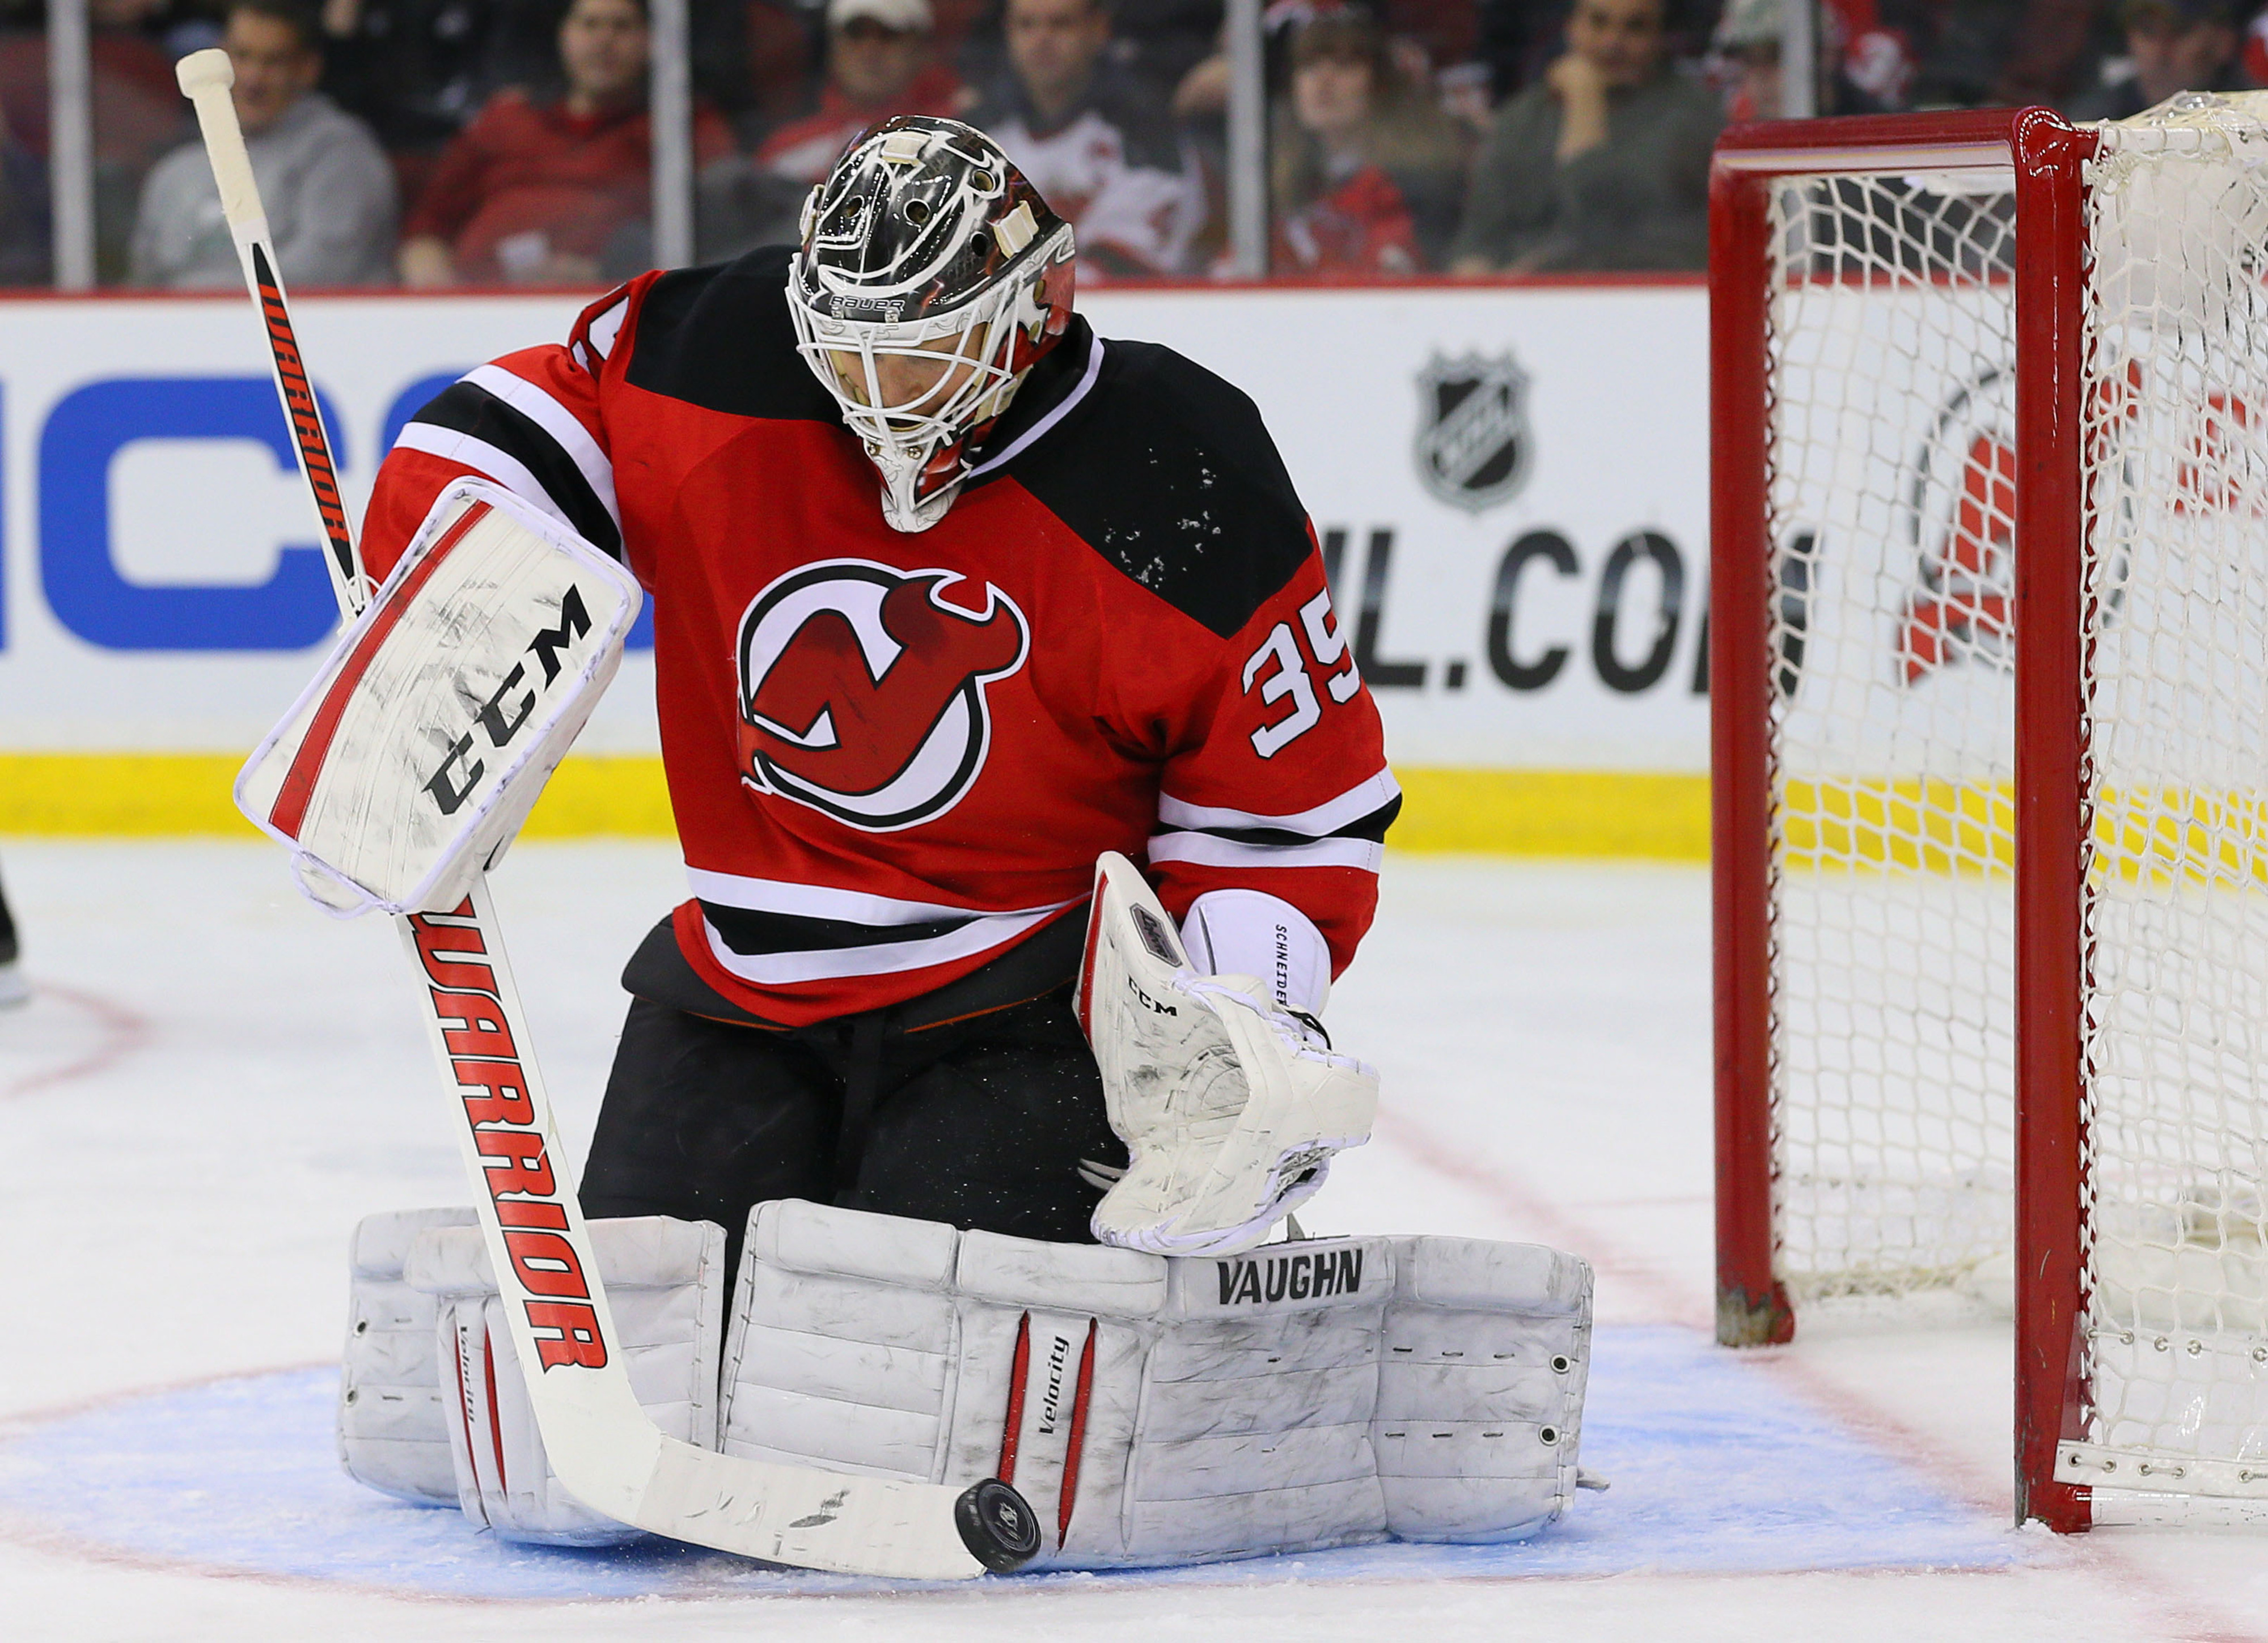 Hopefully we'll be seeing this a lot from Cory Schneider when the opposing team shoots this season.